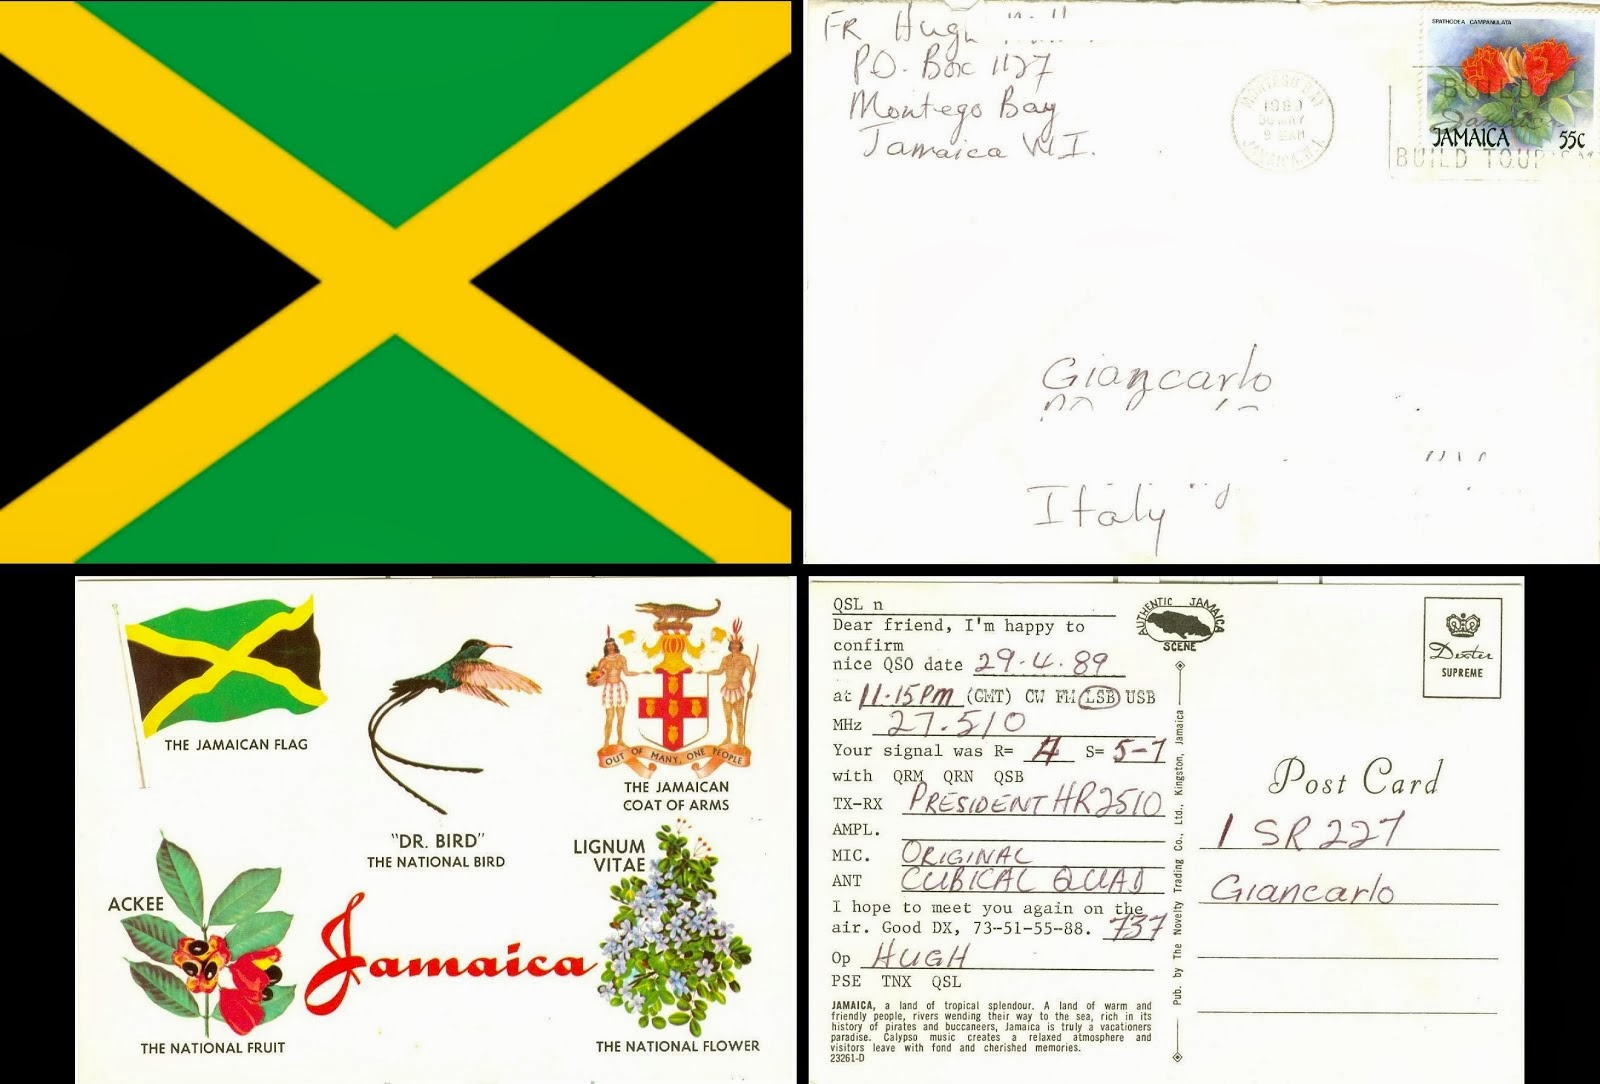 Parishes of Jamaica click on the image to see the link